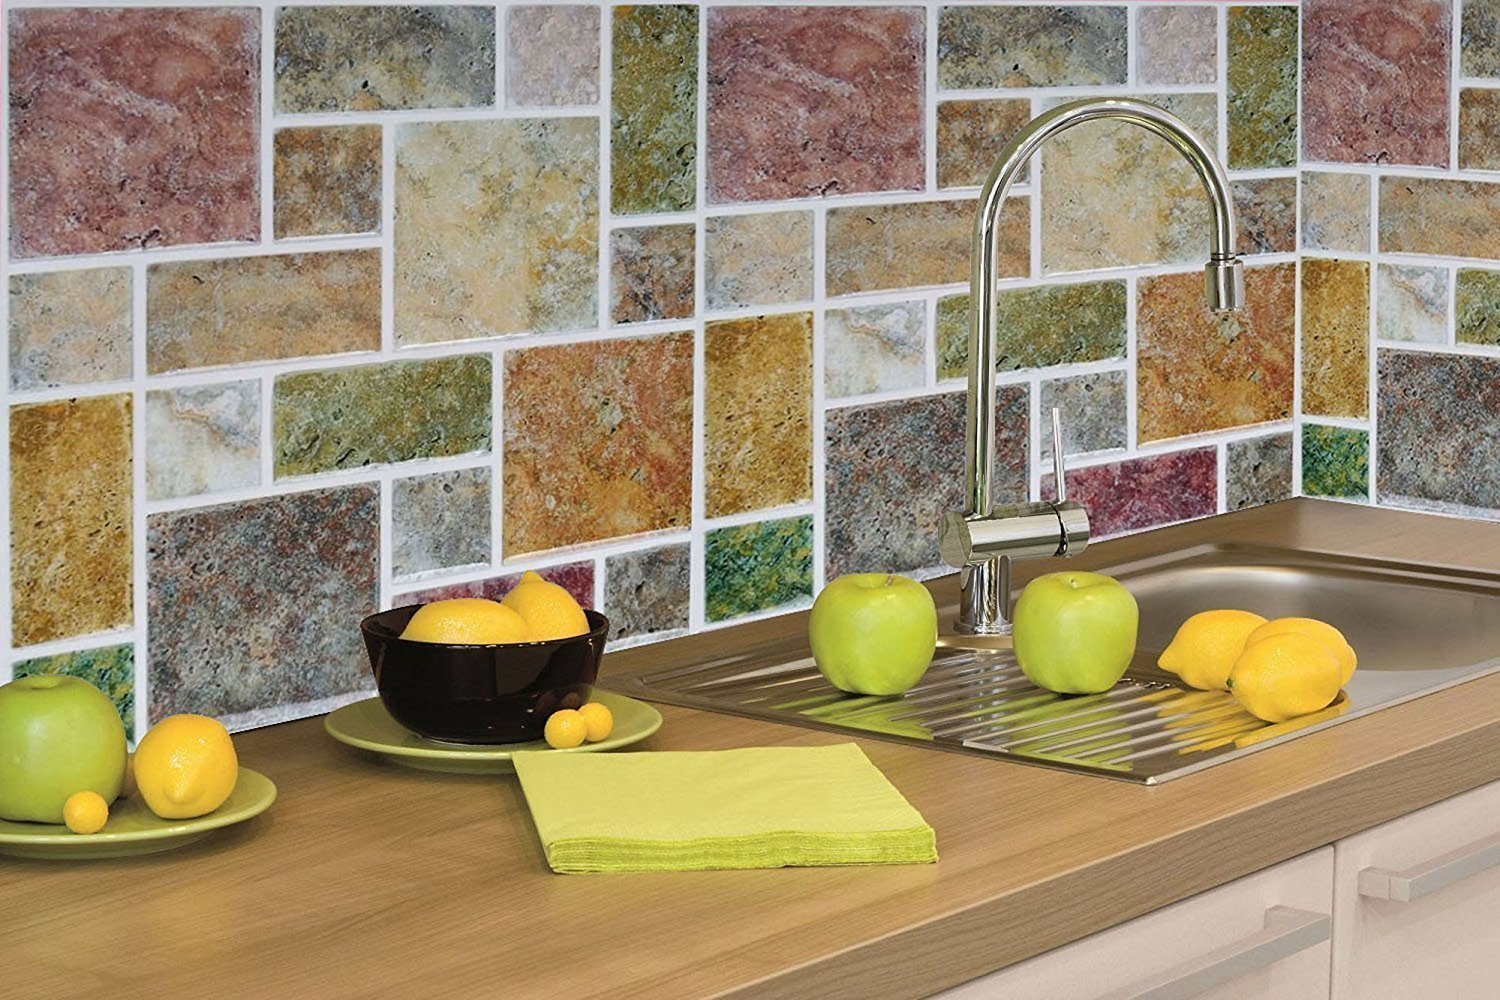 Tile Sticker Peel And Stick Vinyl Kitchen Backsplash Wall Stickers Multicolour 23x23cm Pack Of 4 Amazon In Home Kitchen